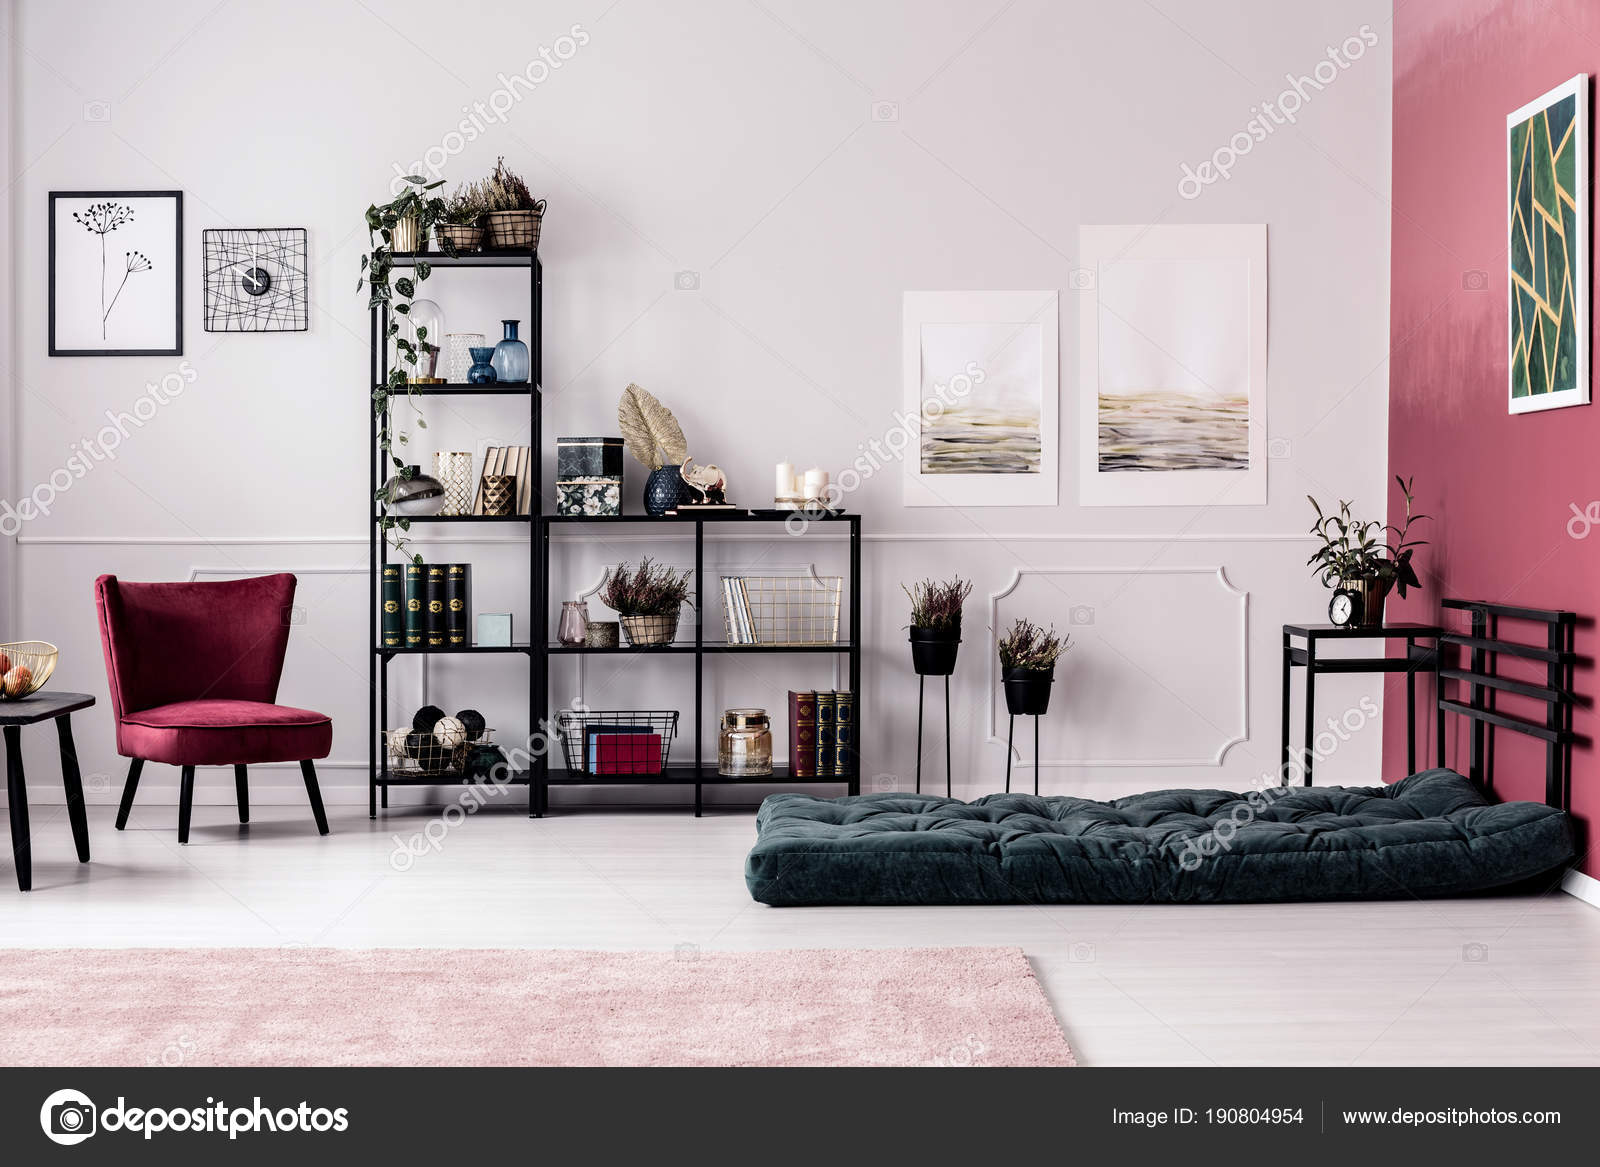 Planten Rek Rek Met Planten En Decoraties Stockfoto Photographee Eu 190804954